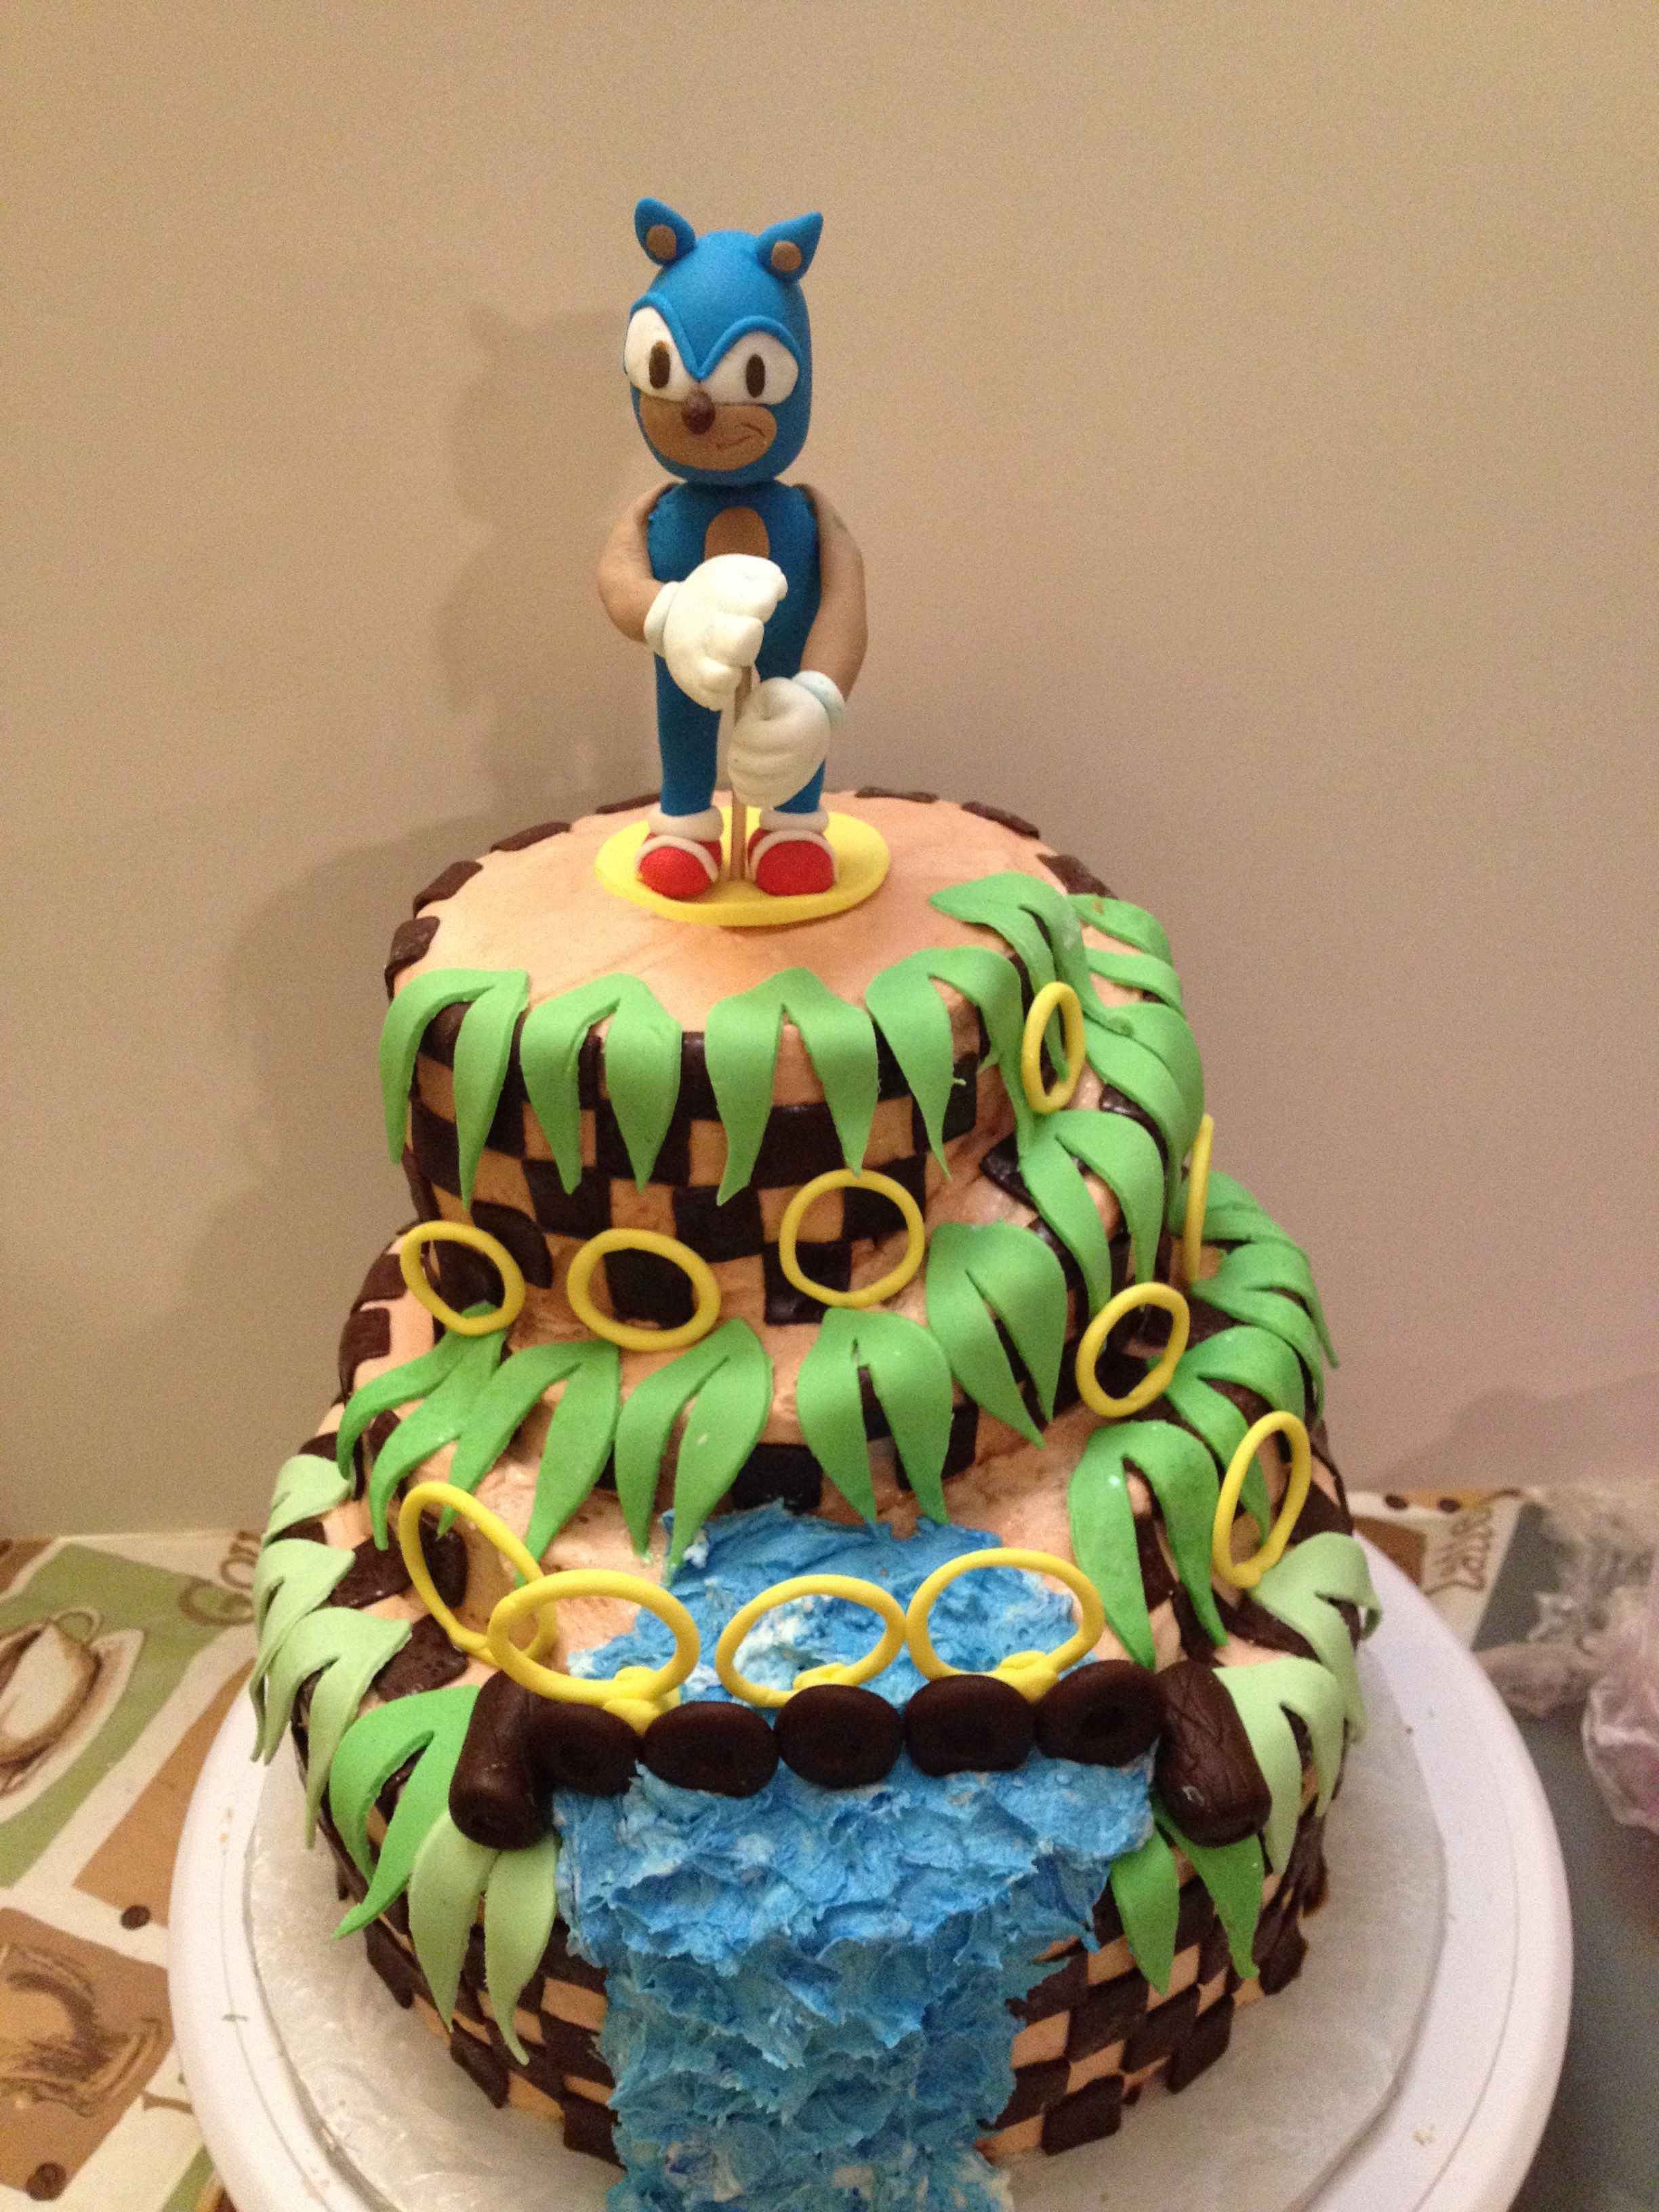 Sonic The Hedgehog Birthday Cake For Nephews Birthday 3 Layers Of Yellow Cake And 2 Top Layers Of Spice Cake With Hedgehog Birthday Butter Cream Birthday Cake